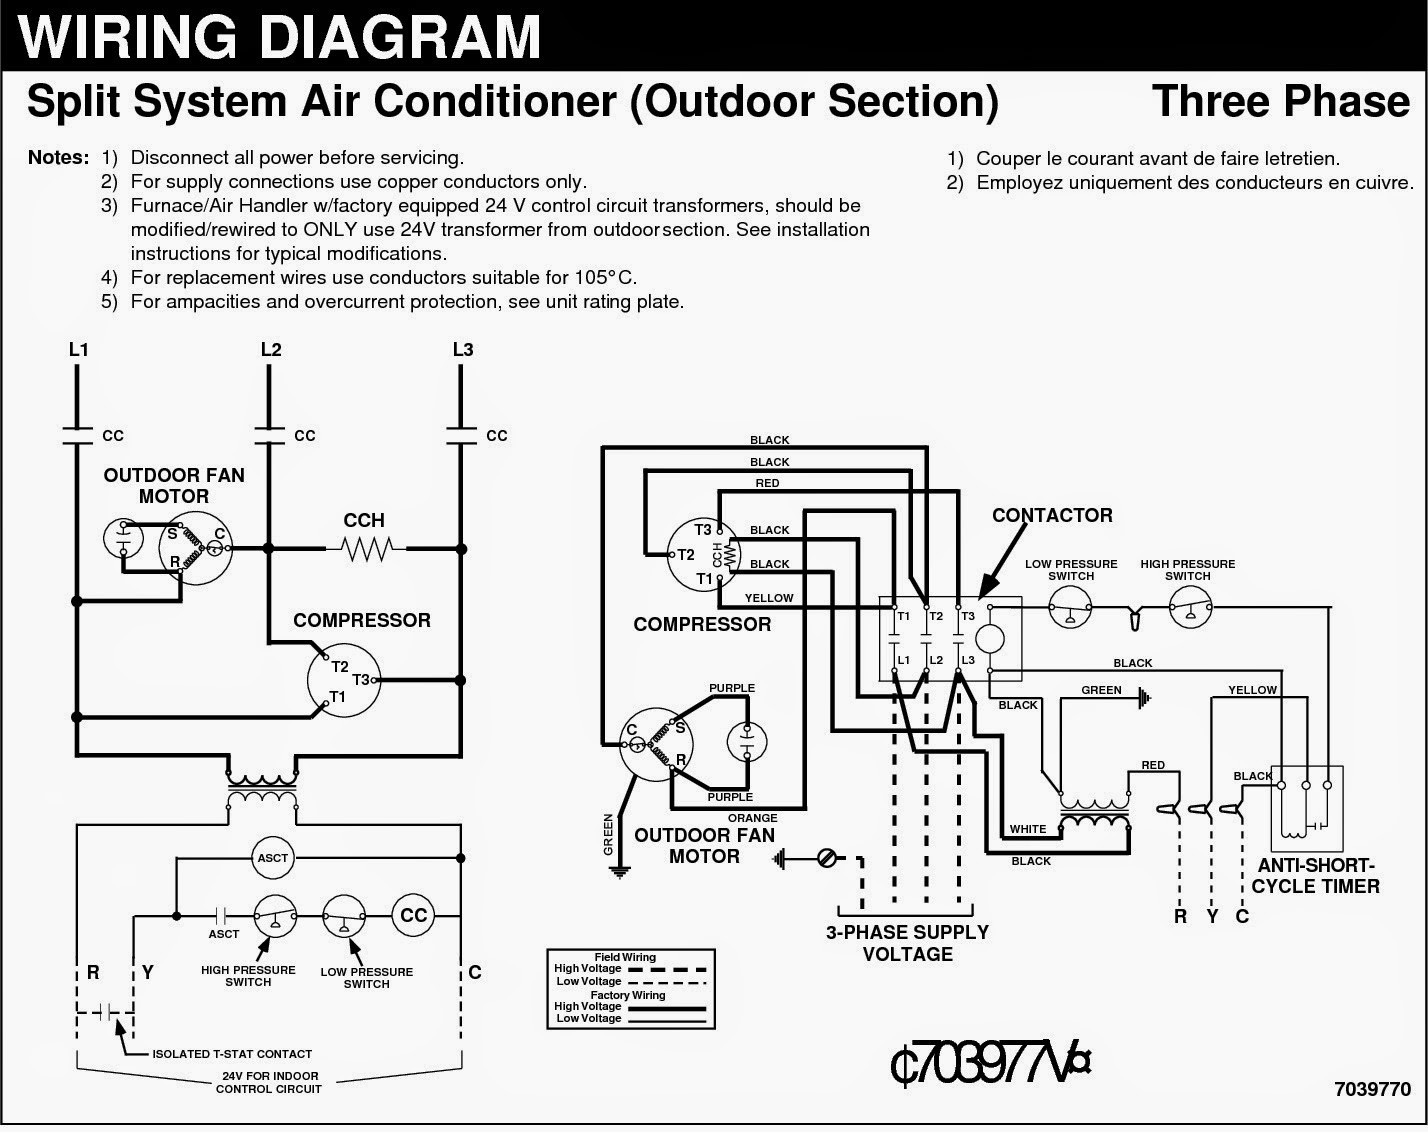 ac schematic wiring diagram wiring diagram source fuel gauge schematic red dot air conditioner wiring diagram [ 1428 x 1132 Pixel ]